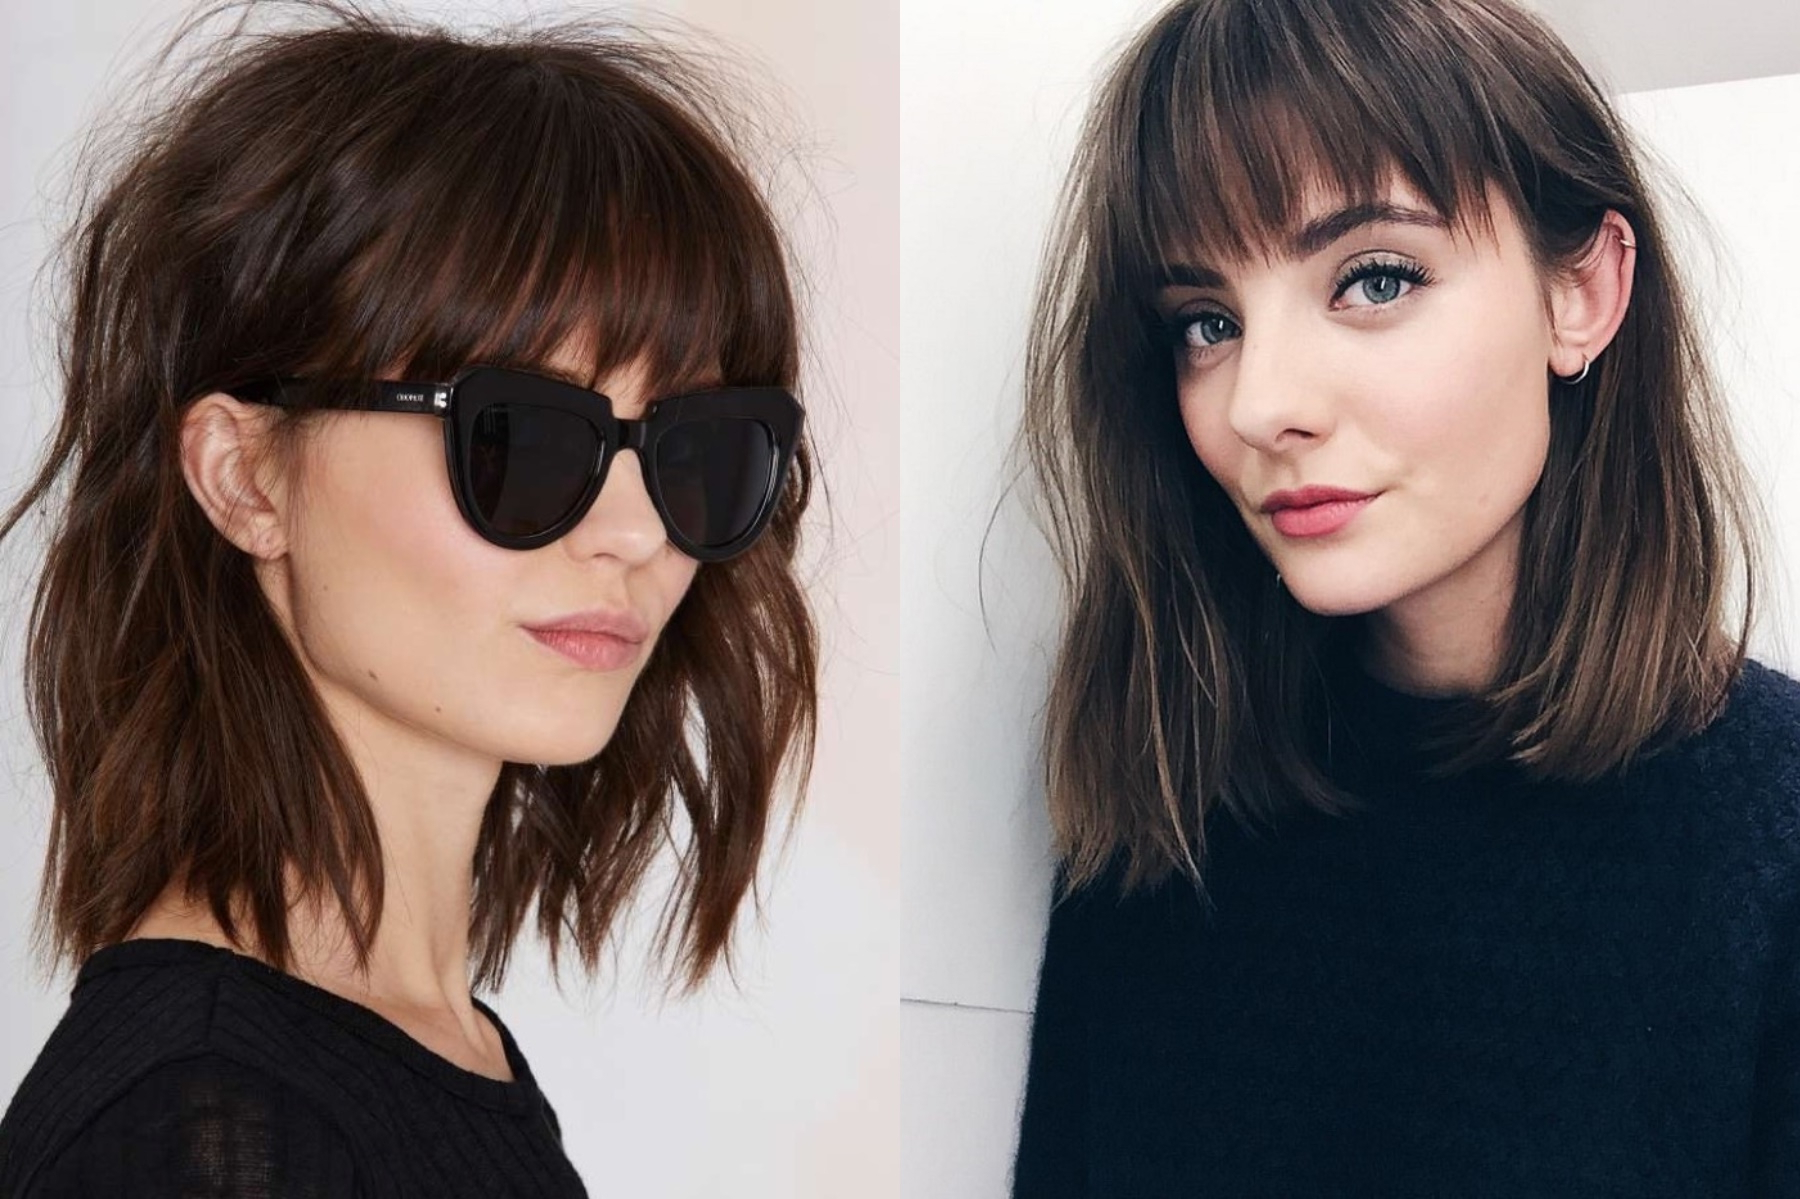 Latest Ragged Bangs 2018 For Women's Hairstyles Pertaining To Trendy Ragged Bob Asian Hairstyles (View 11 of 20)